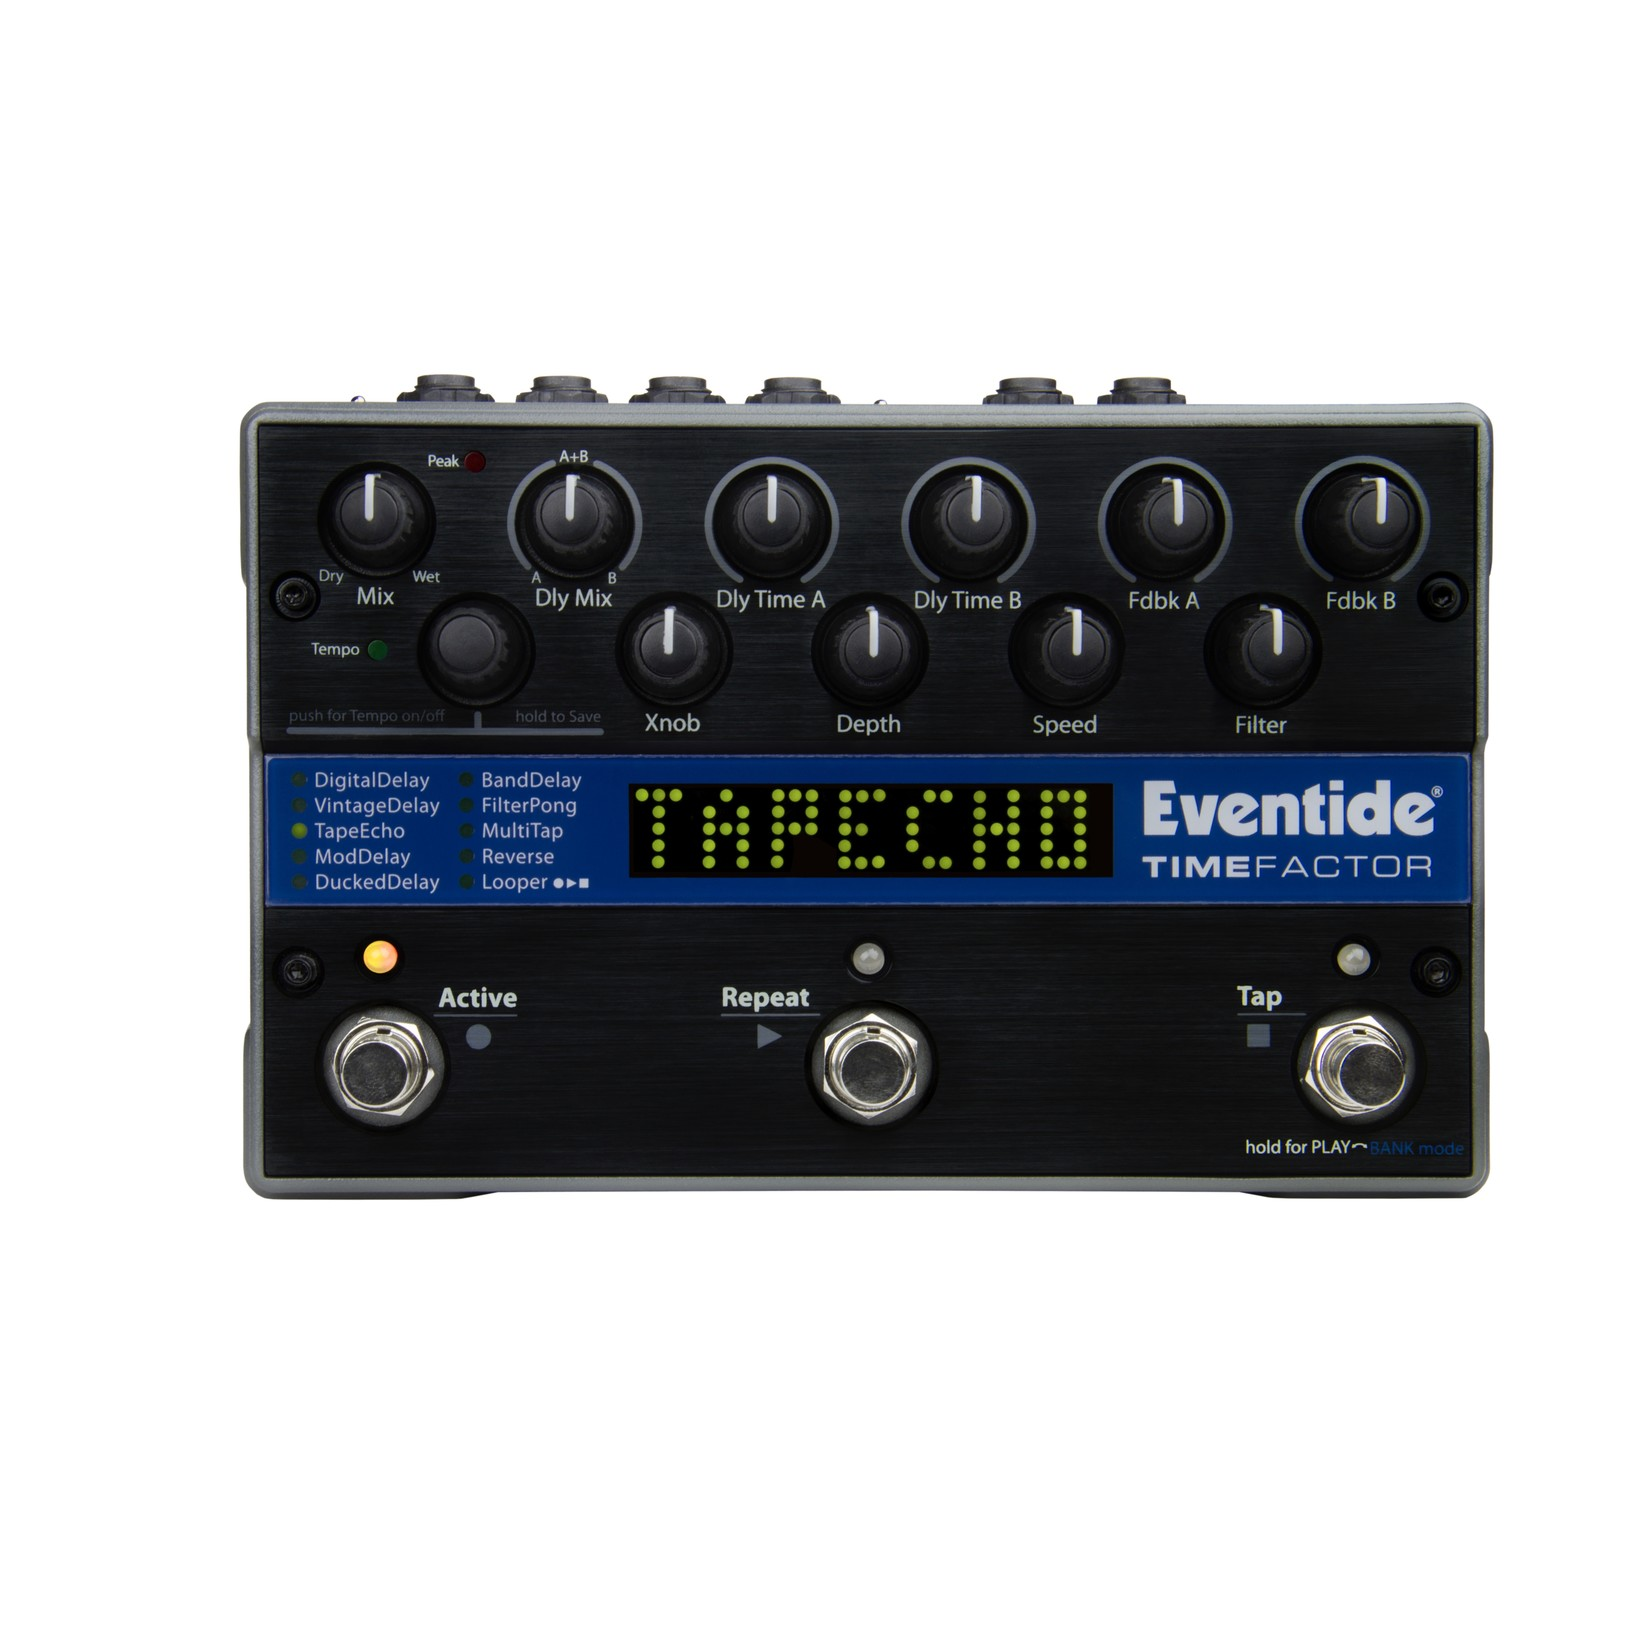 Eventide Eventide TimeFactor Dual-Delay Pedal with Looper